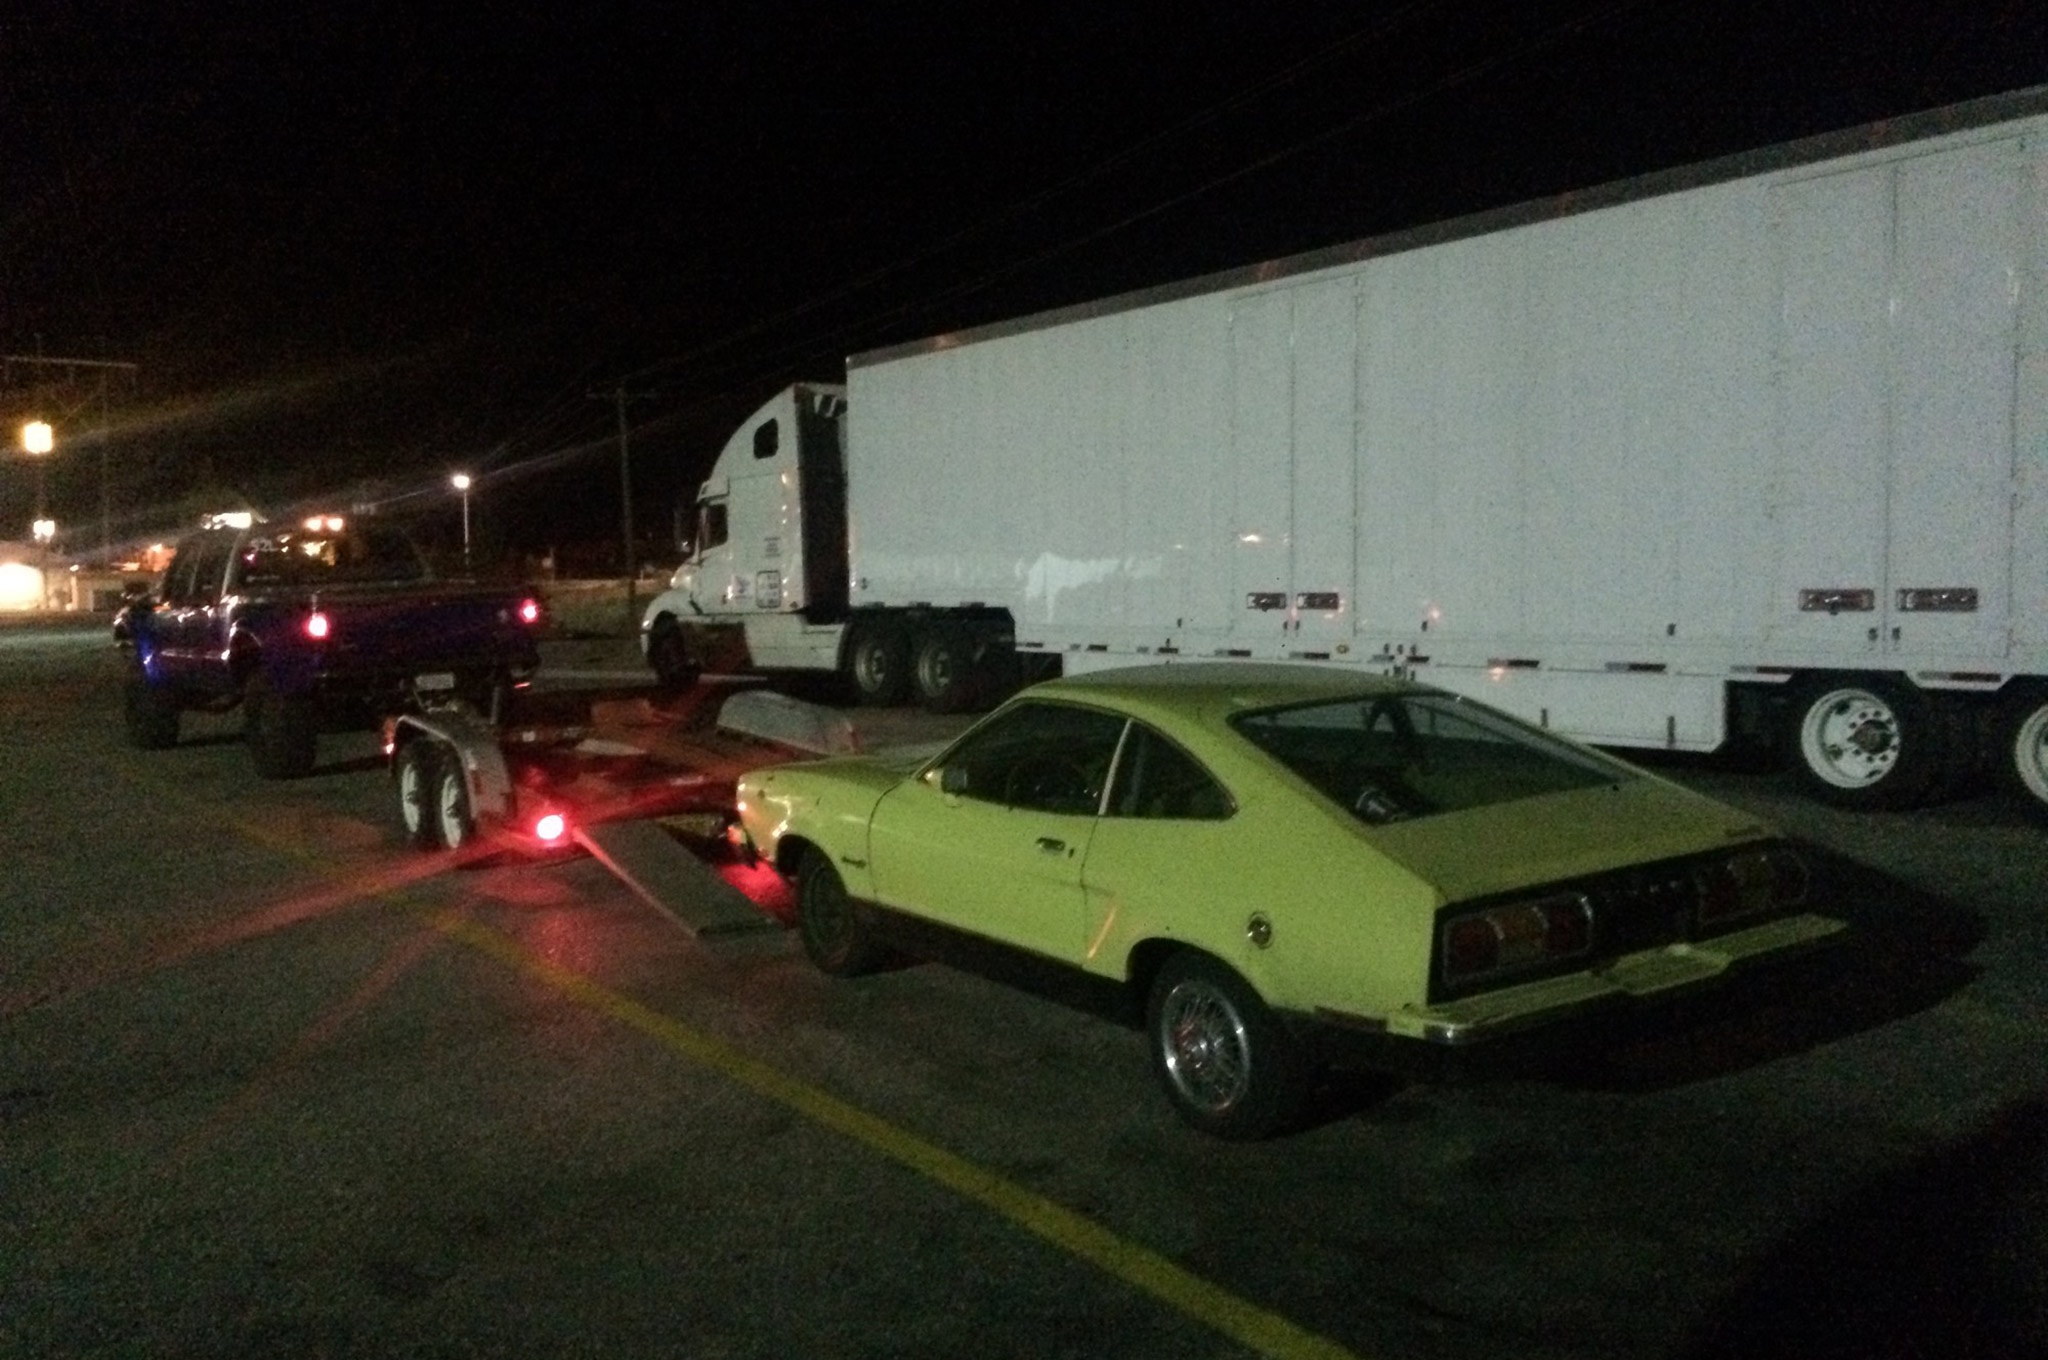 1974 Ford Mustang Ii Project Rodney Finale 05